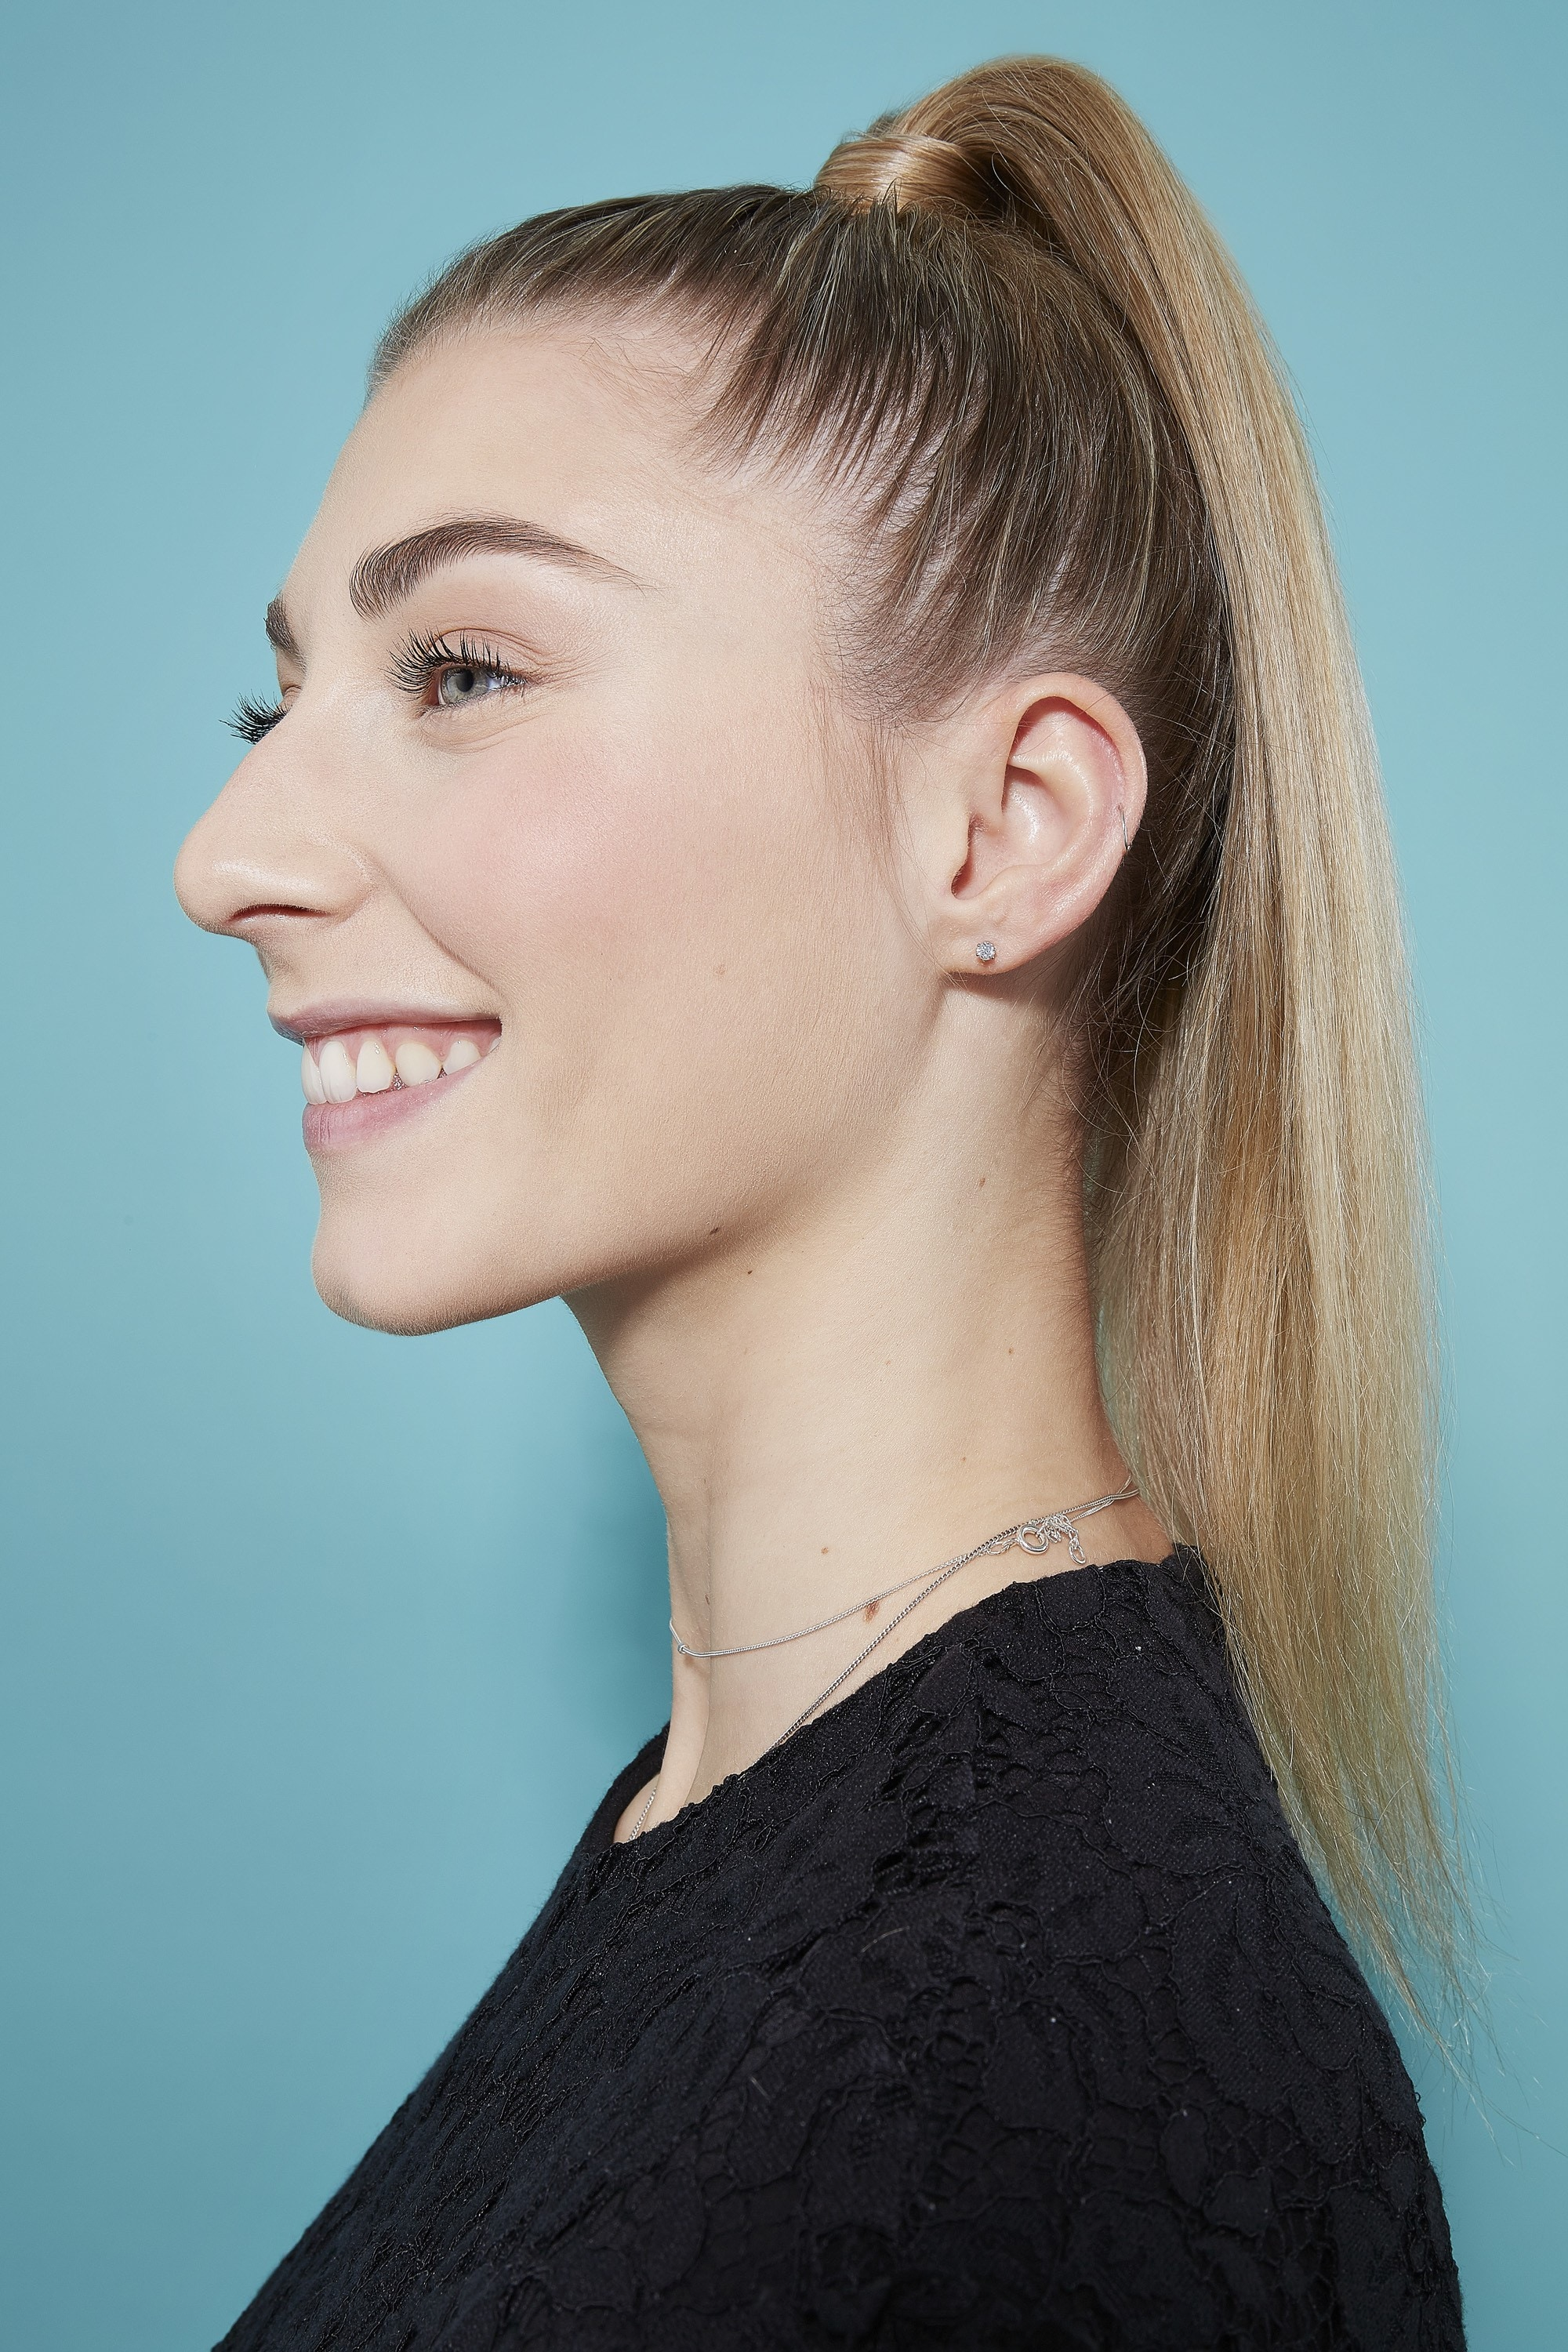 Woman with blonde high ponytail